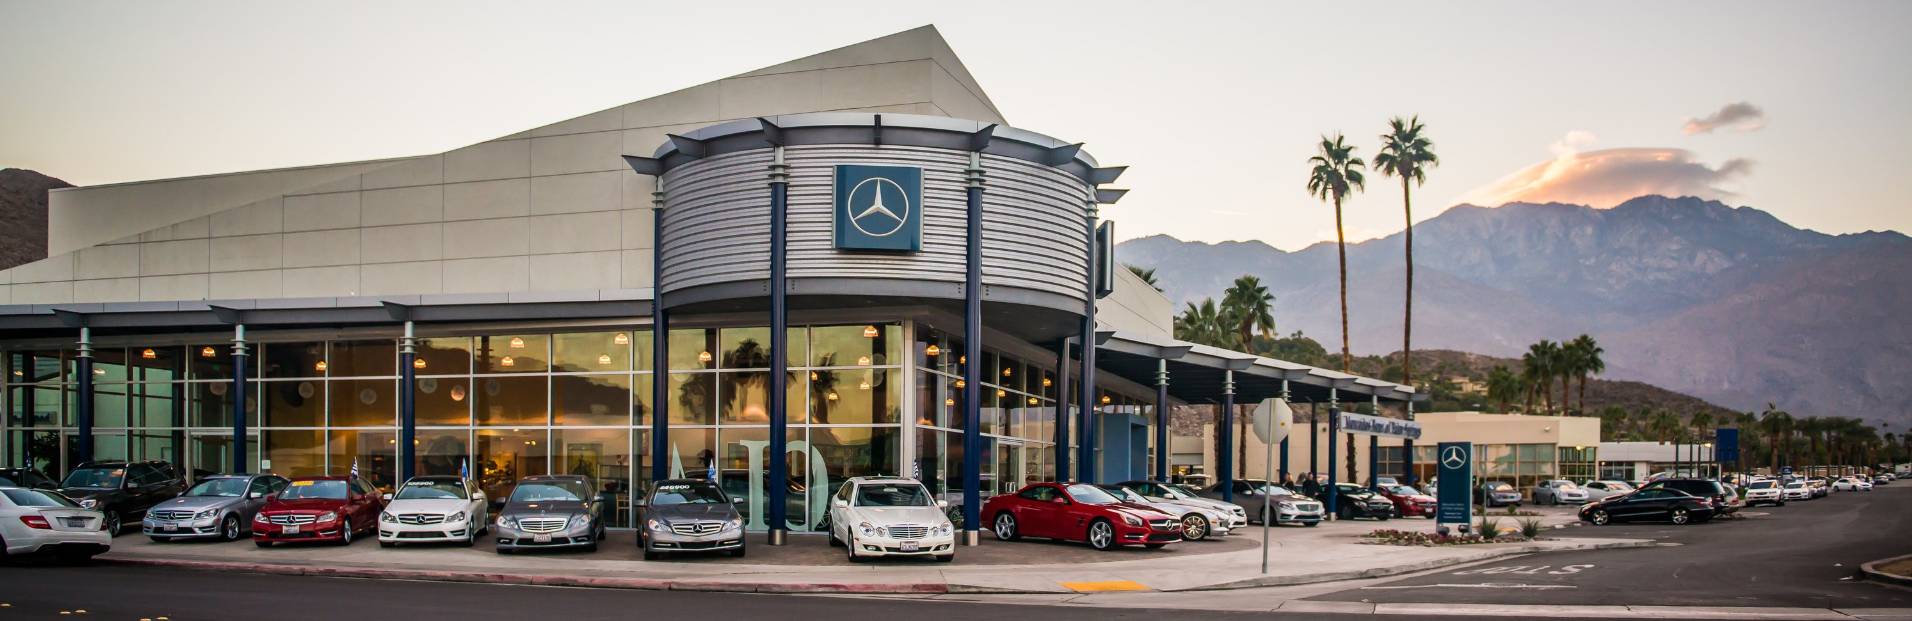 Mercedes-Benz of Palm Springs image 0